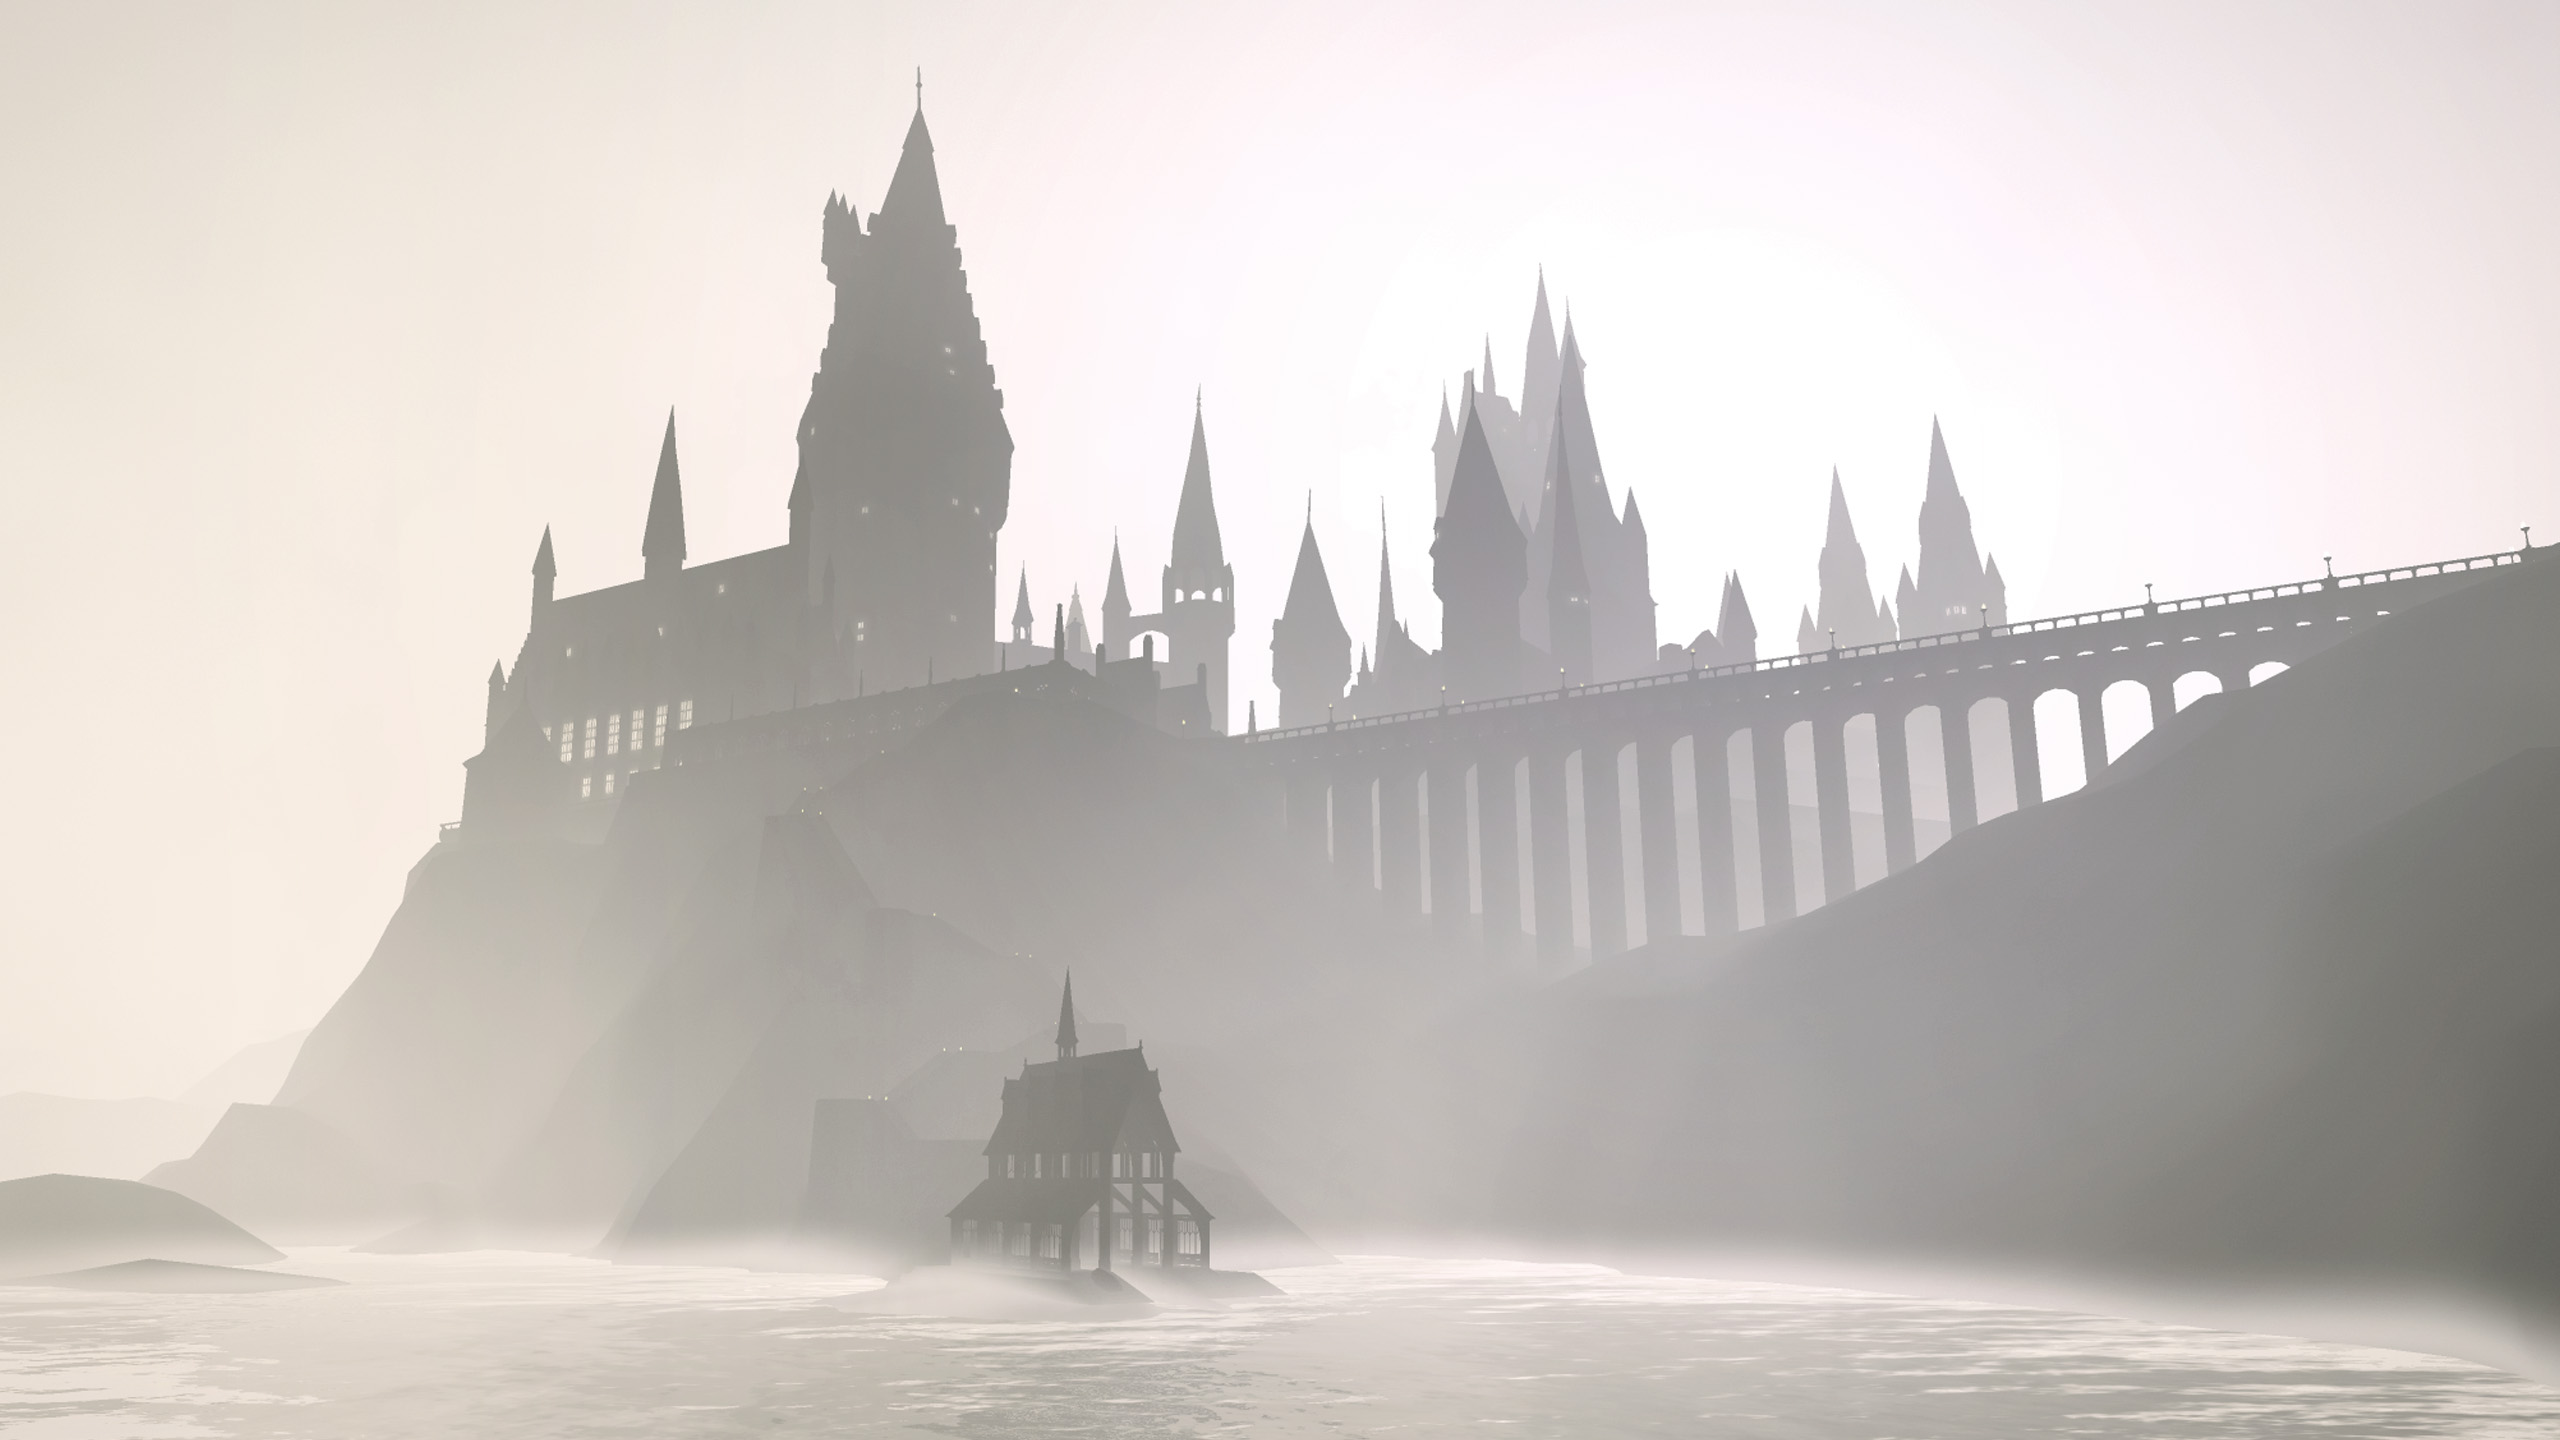 Ohio Harry Potter Fans Can Now Explore The Halls Of Hogwarts